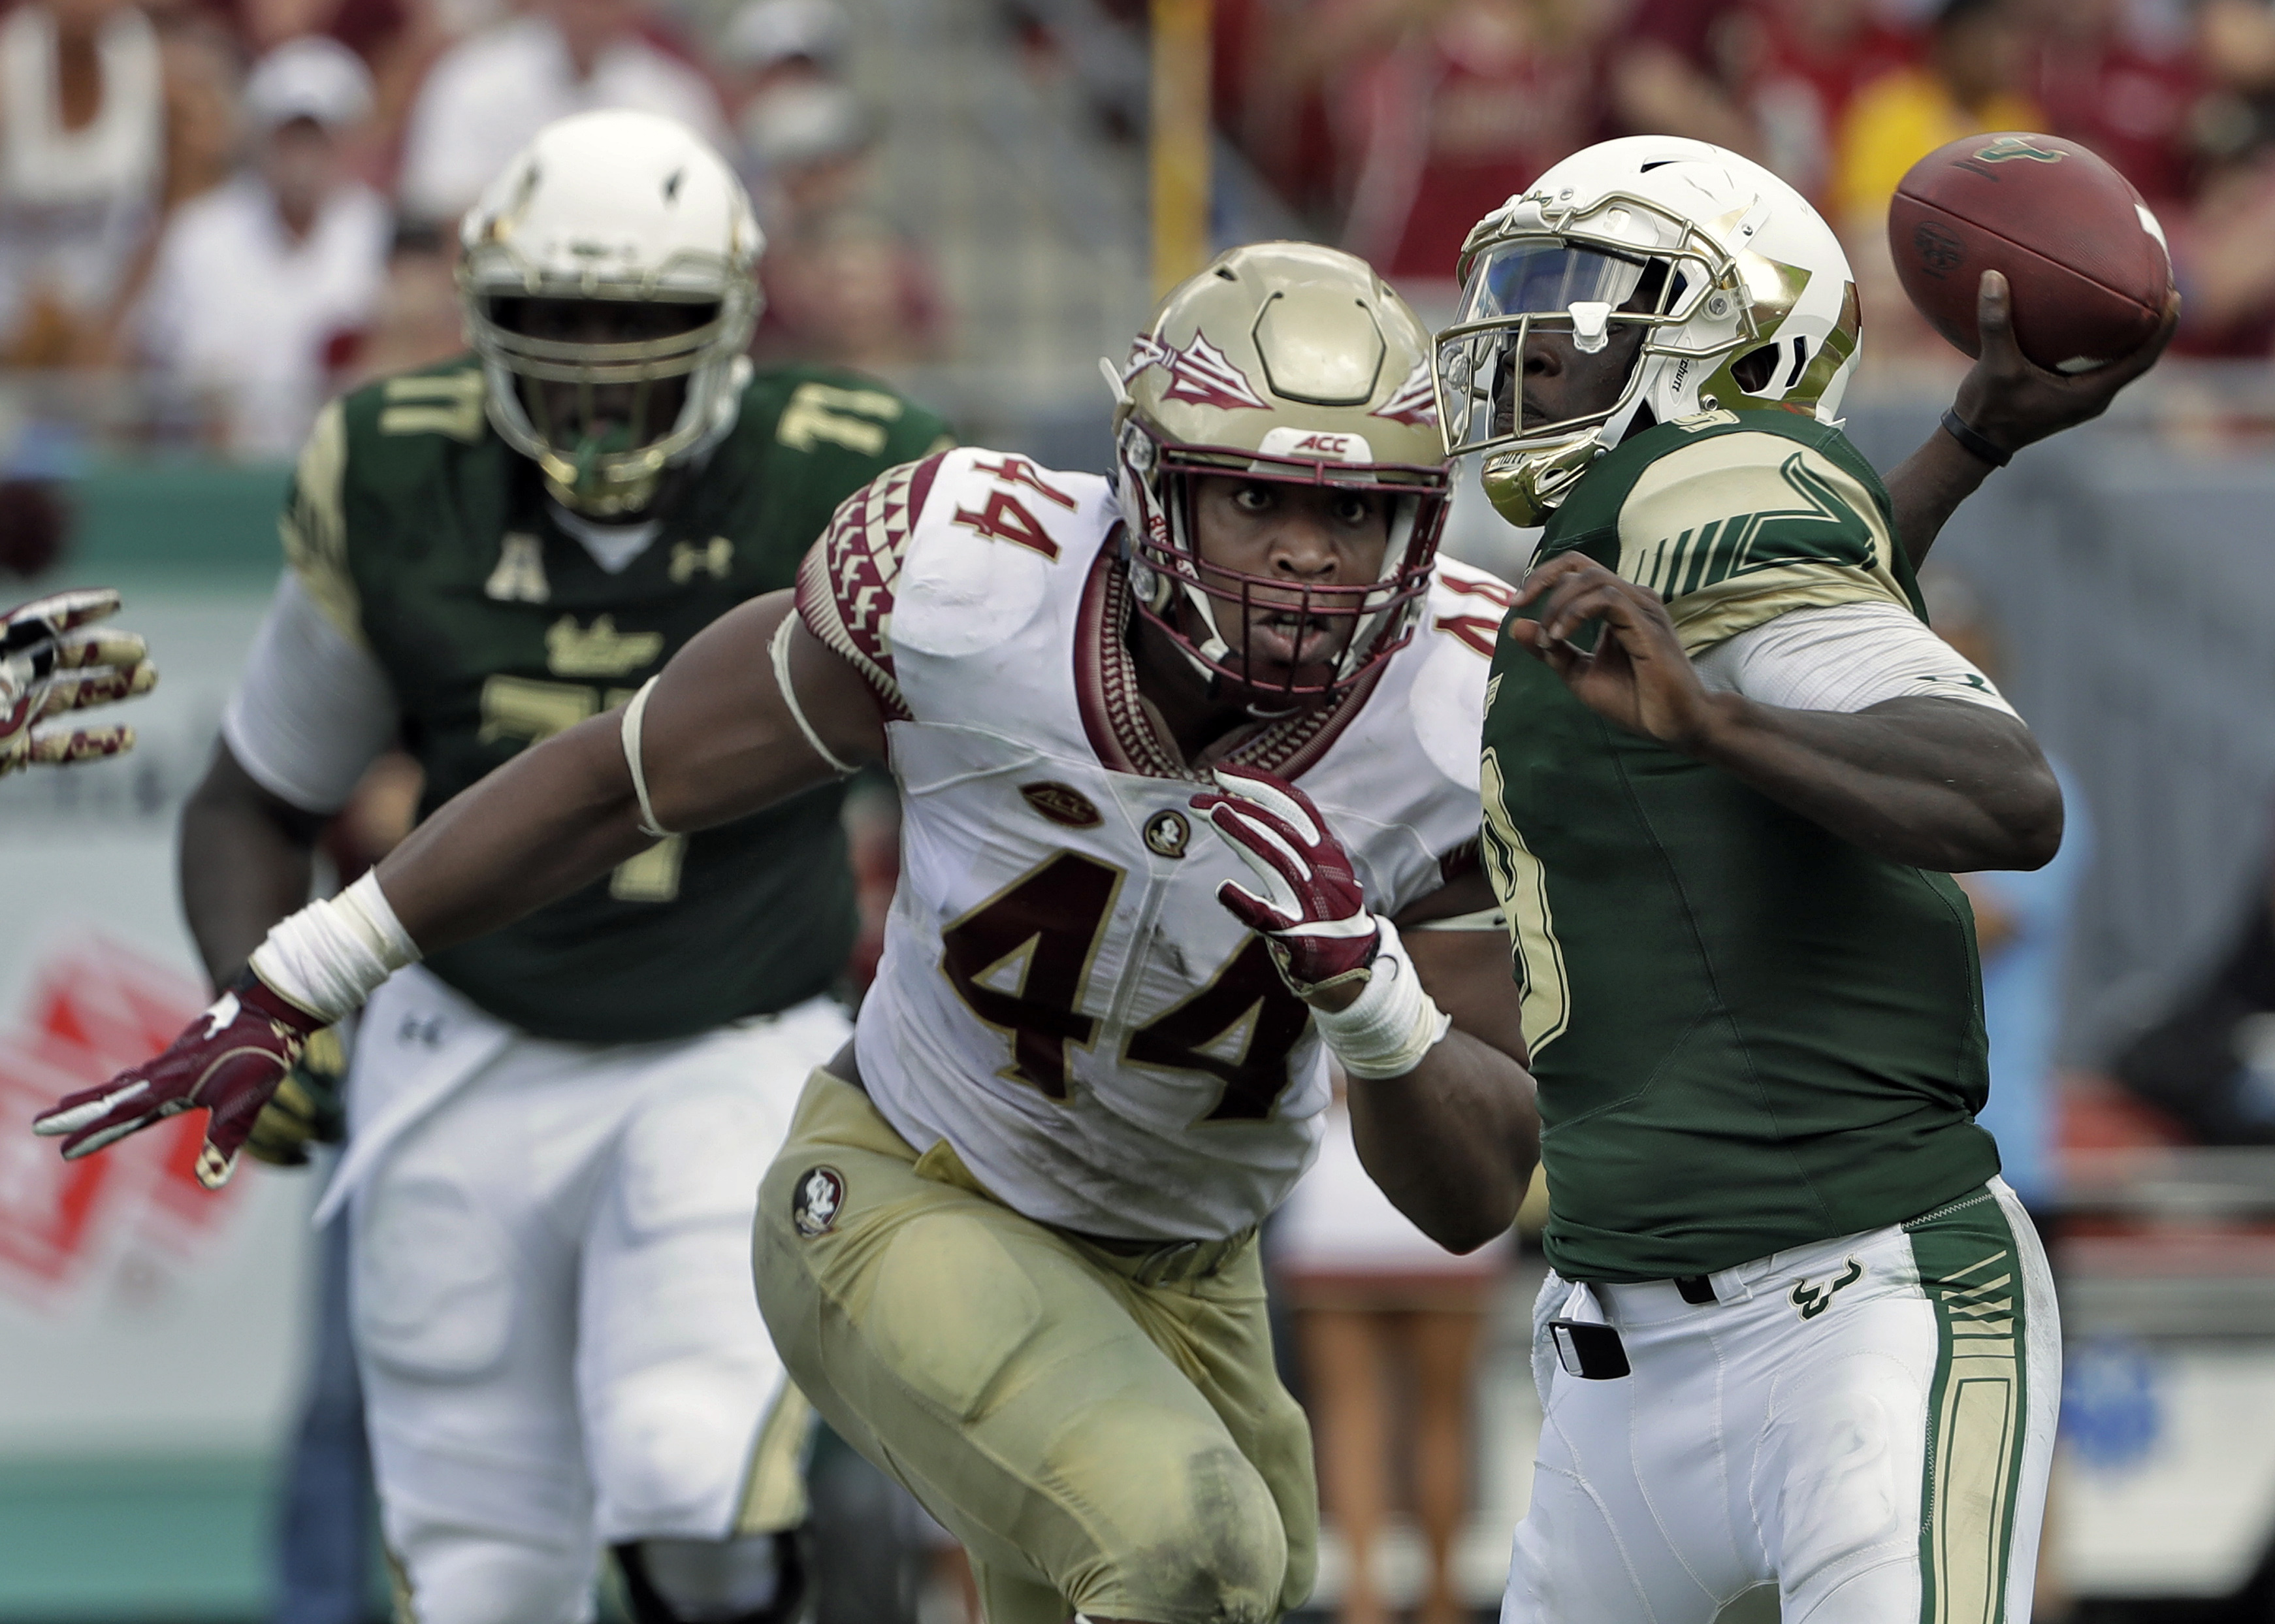 Florida State defensive end DeMarcus Walker (44) closes in on South Florida quarterback Quinton Flowers as he throws a pass during the second half of an NCAA college football game, Saturday, Sept. 24, 2016, in Tampa, Fla. Florida State won the game 55-35.